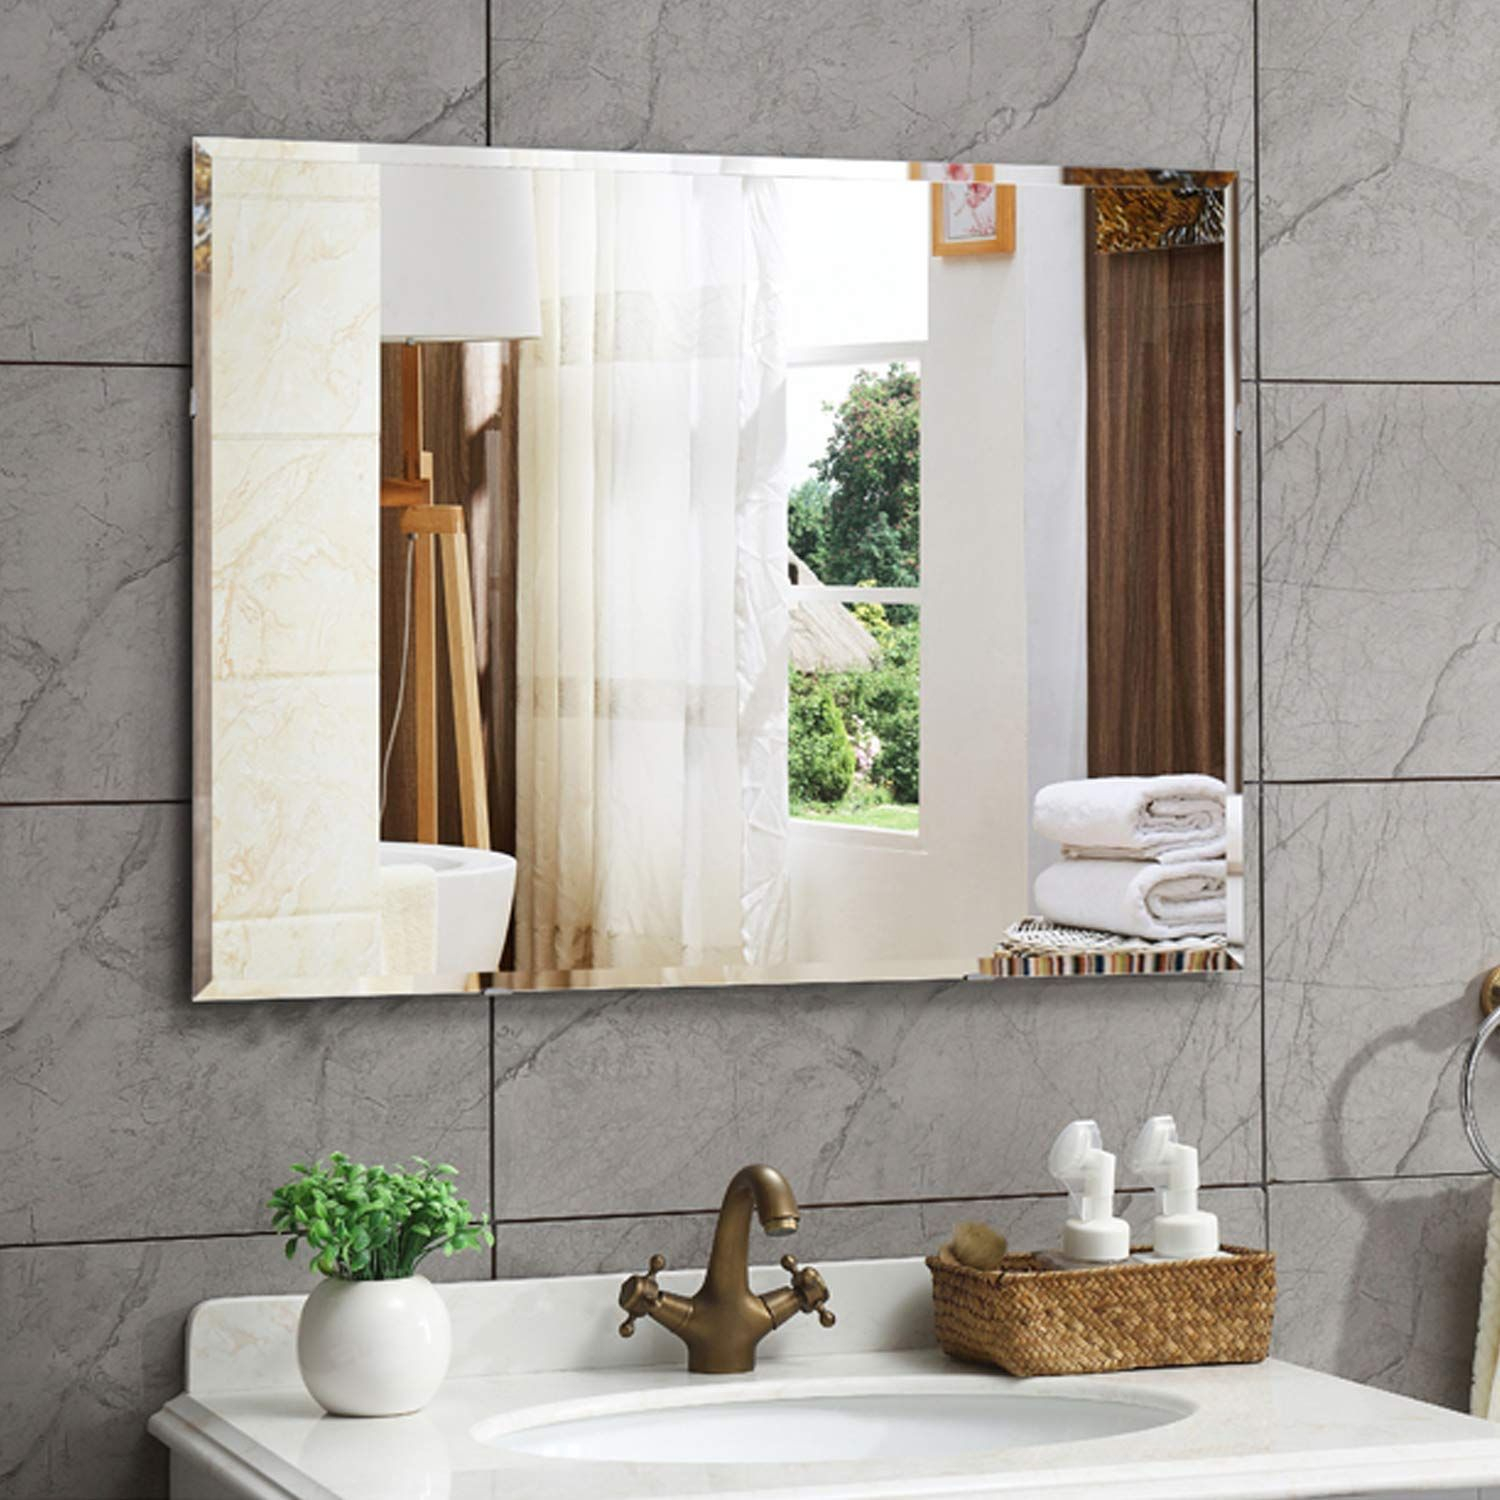 Amazon: Hans&alice Beveled Bathroom Mirrors Wall Mounted within Boyers Wall Mirrors (Image 1 of 30)